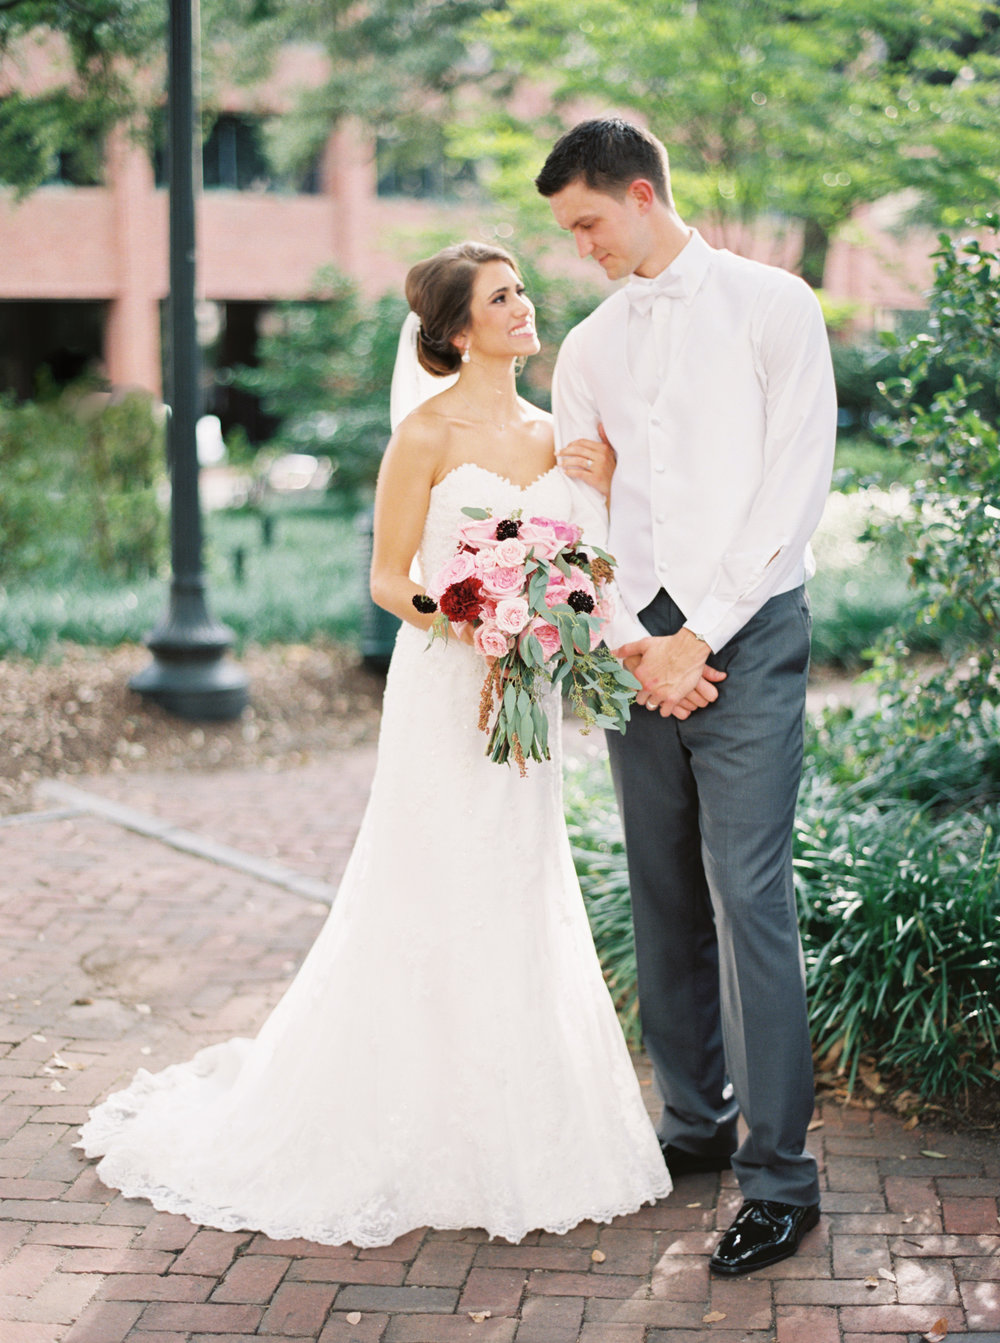 ivory-and-beau-bridal-boutique-savannah-wedding-dress-savannah-wedding-gown-savannah-bridal-boutique-savannah-bridal-shop-savannah-wedding-planner-savannah-florist-savannah-wedding-florals-4.jpg